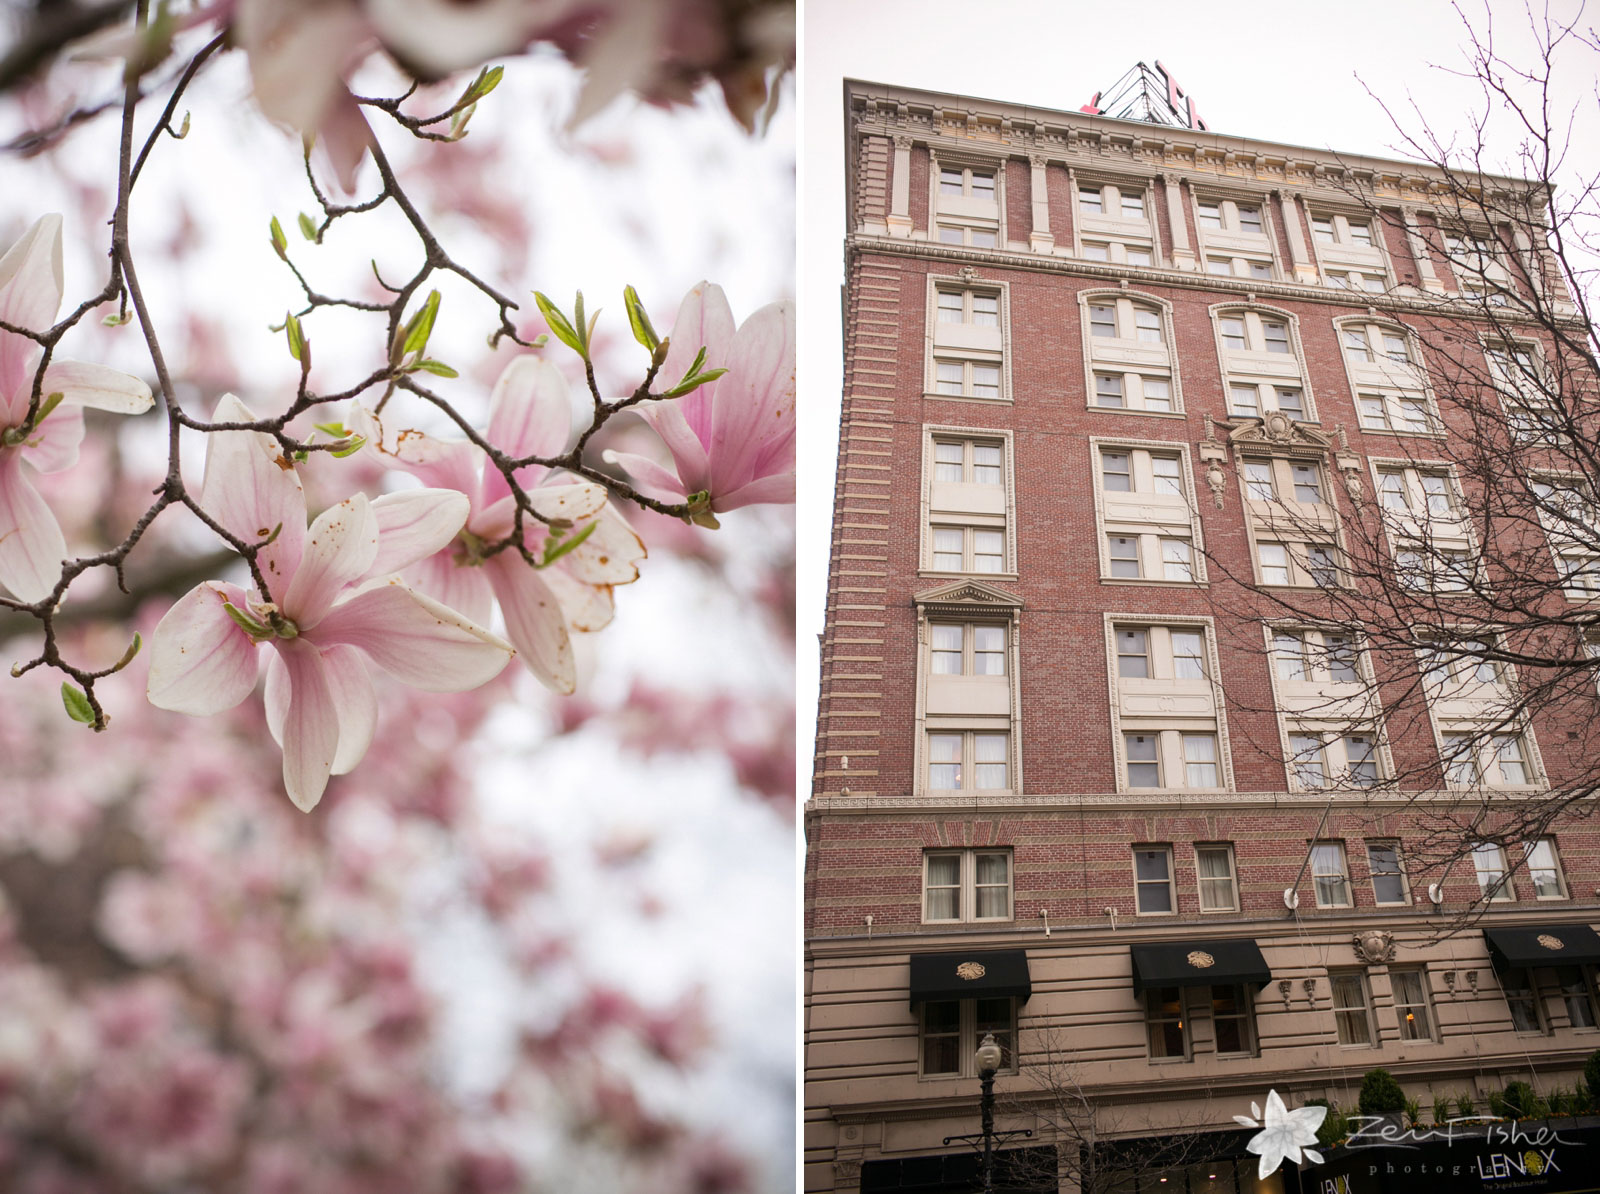 Detail of magnolia trees in full bloom, and the facade of the Lenox Hotel.